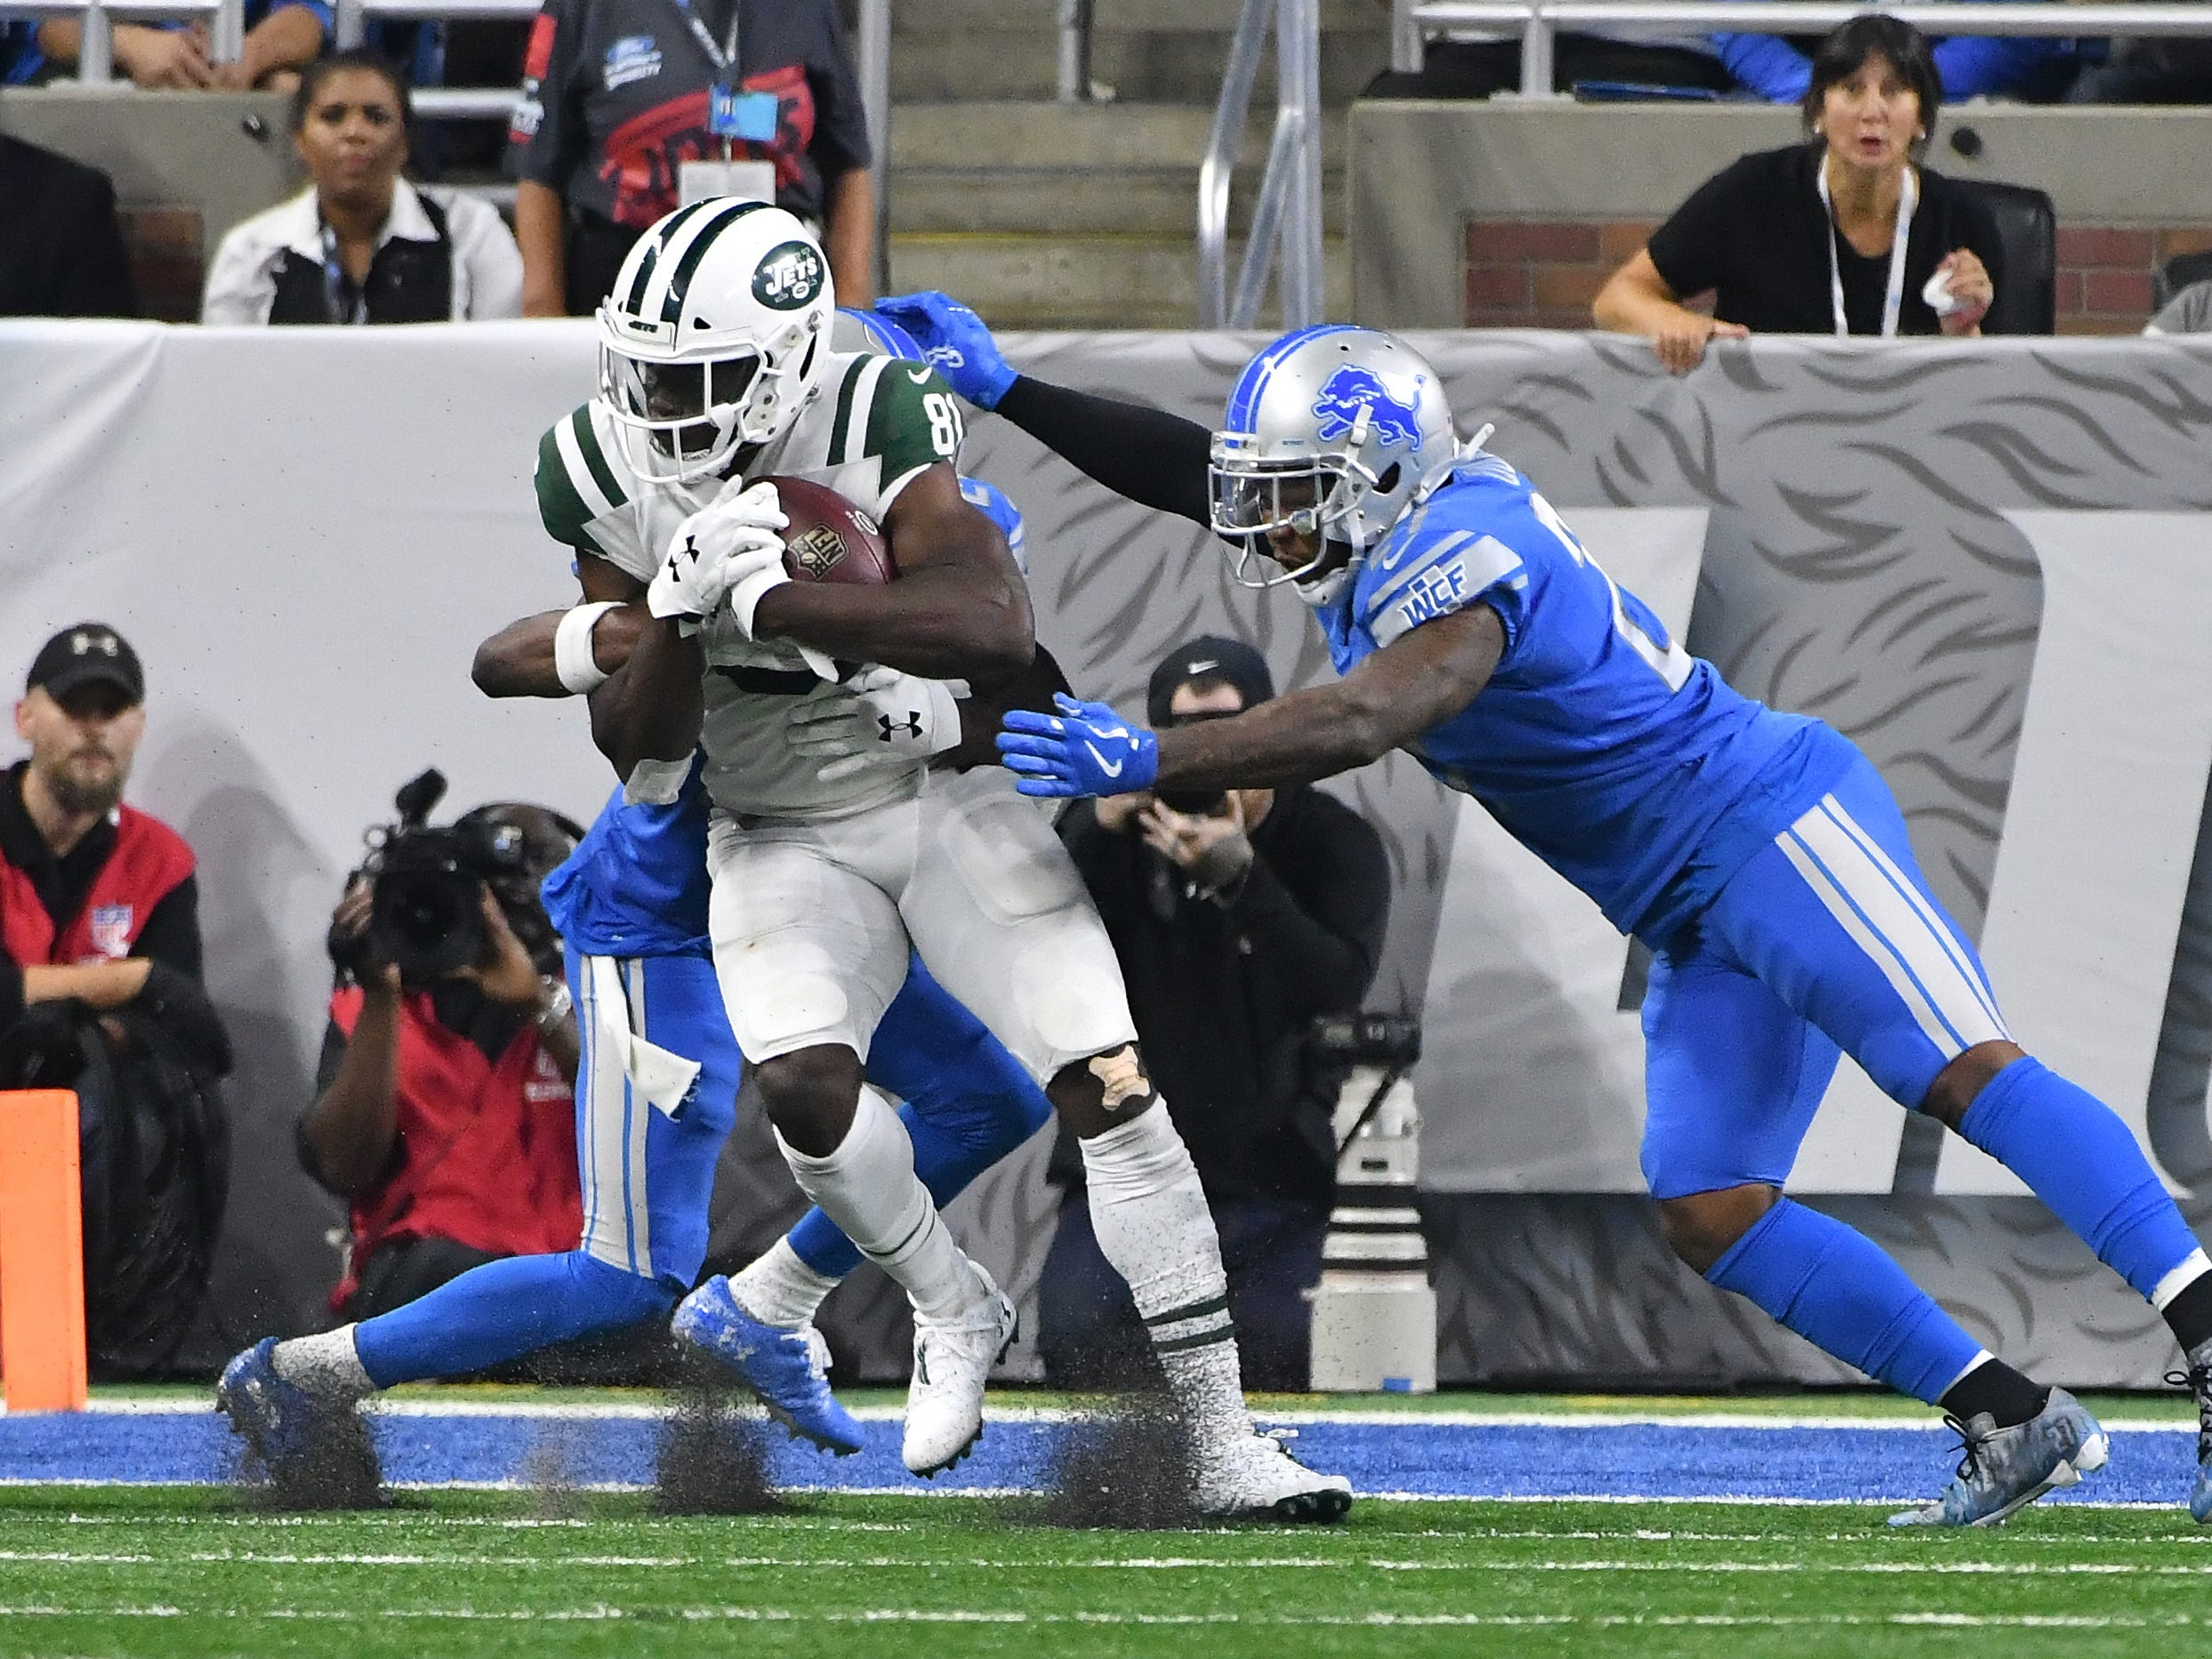 Jets' Quincy Enuwa muscles his way into the engine with Lions' Nevin Lawson and Quandre Diggs defending in the third quarter.